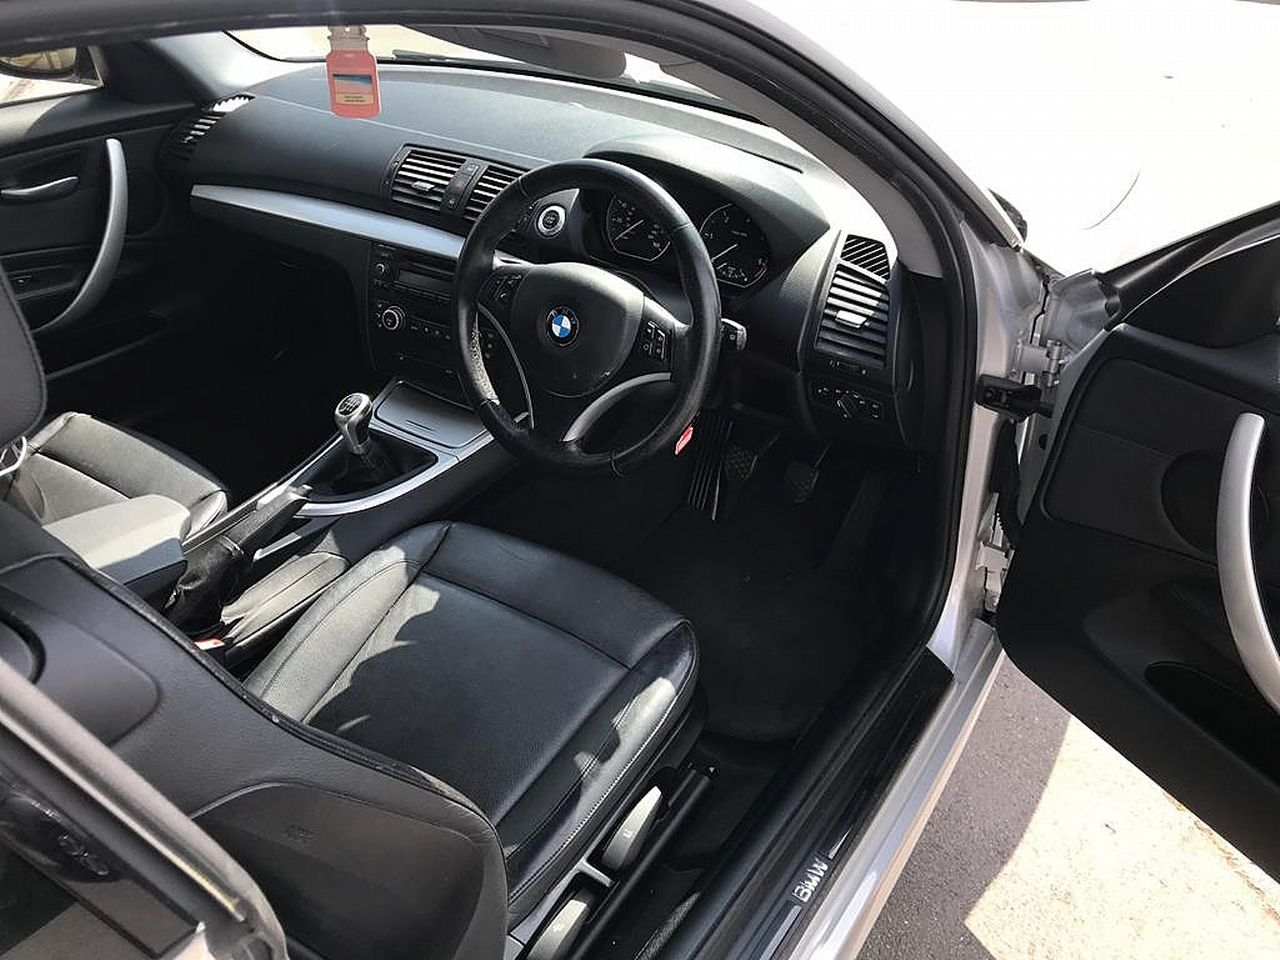 2008 BMW 1 Series 120d SE - Picture 10 of 12